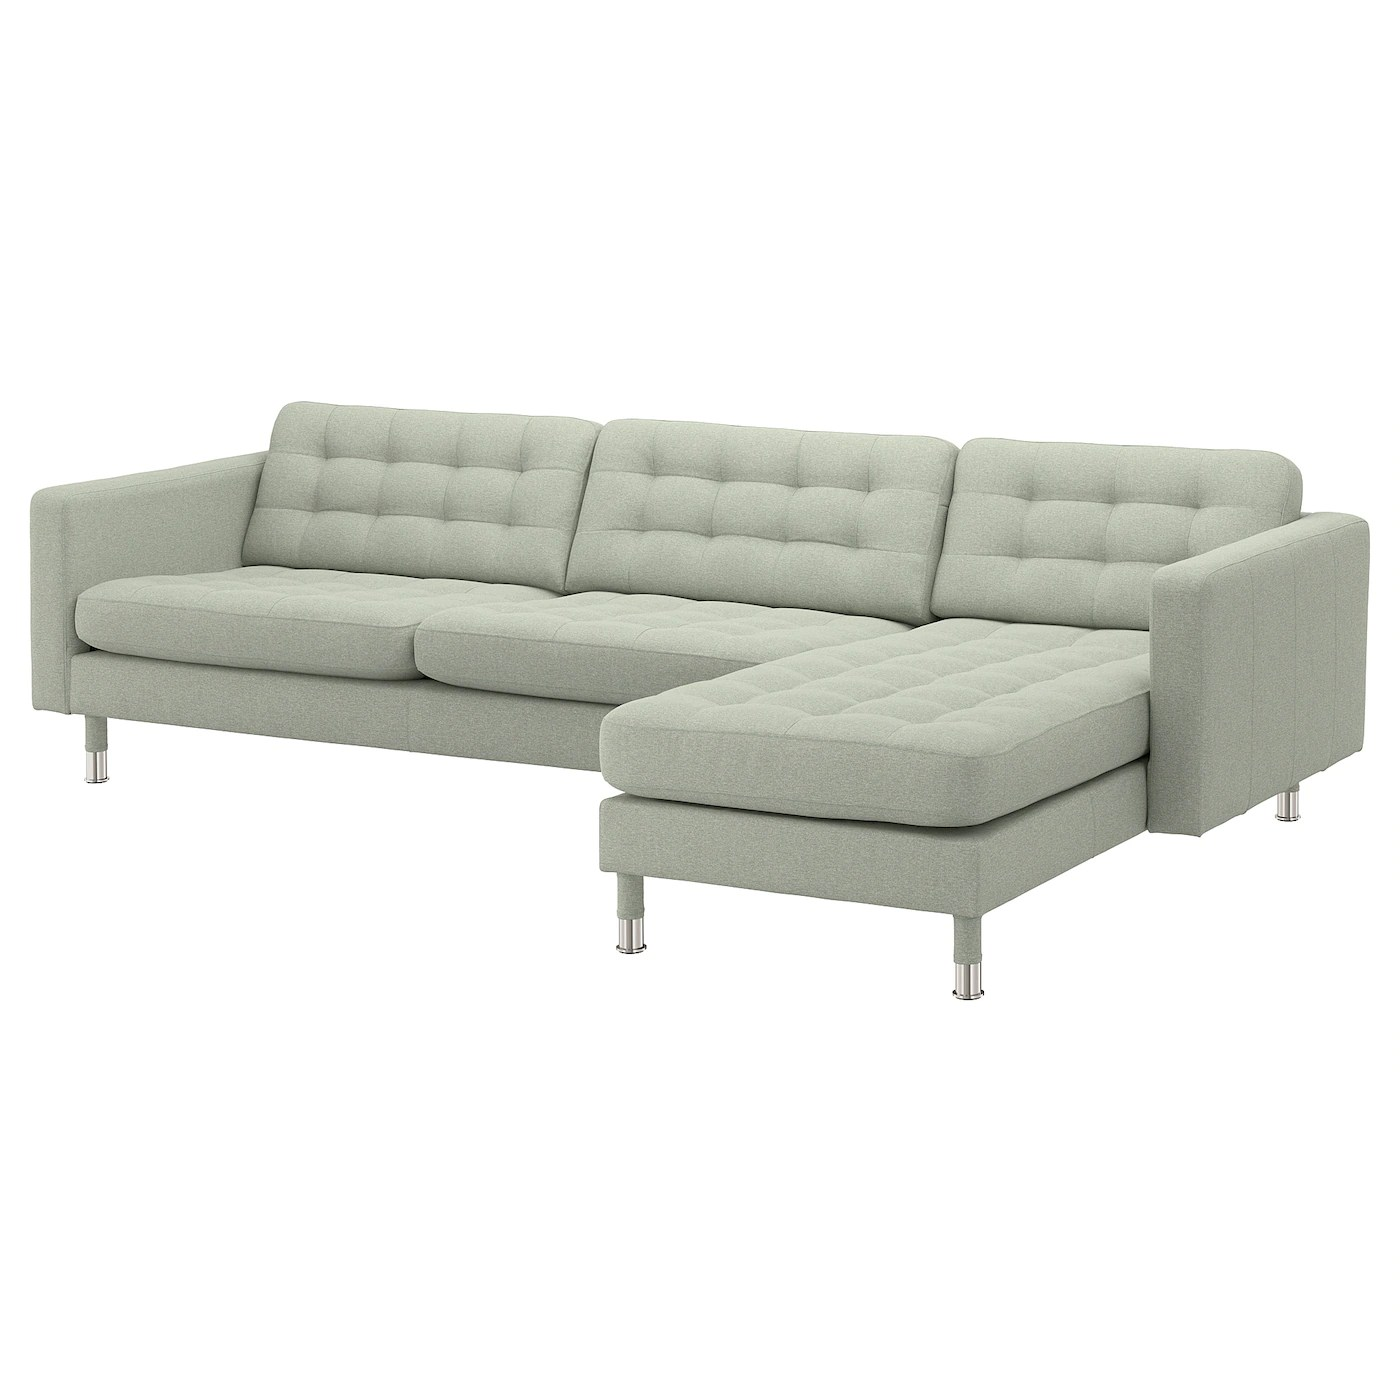 Ikea Landskrona Sofa Landskrona 4 Seat Sofa With Chaise Longue Gunnared Light